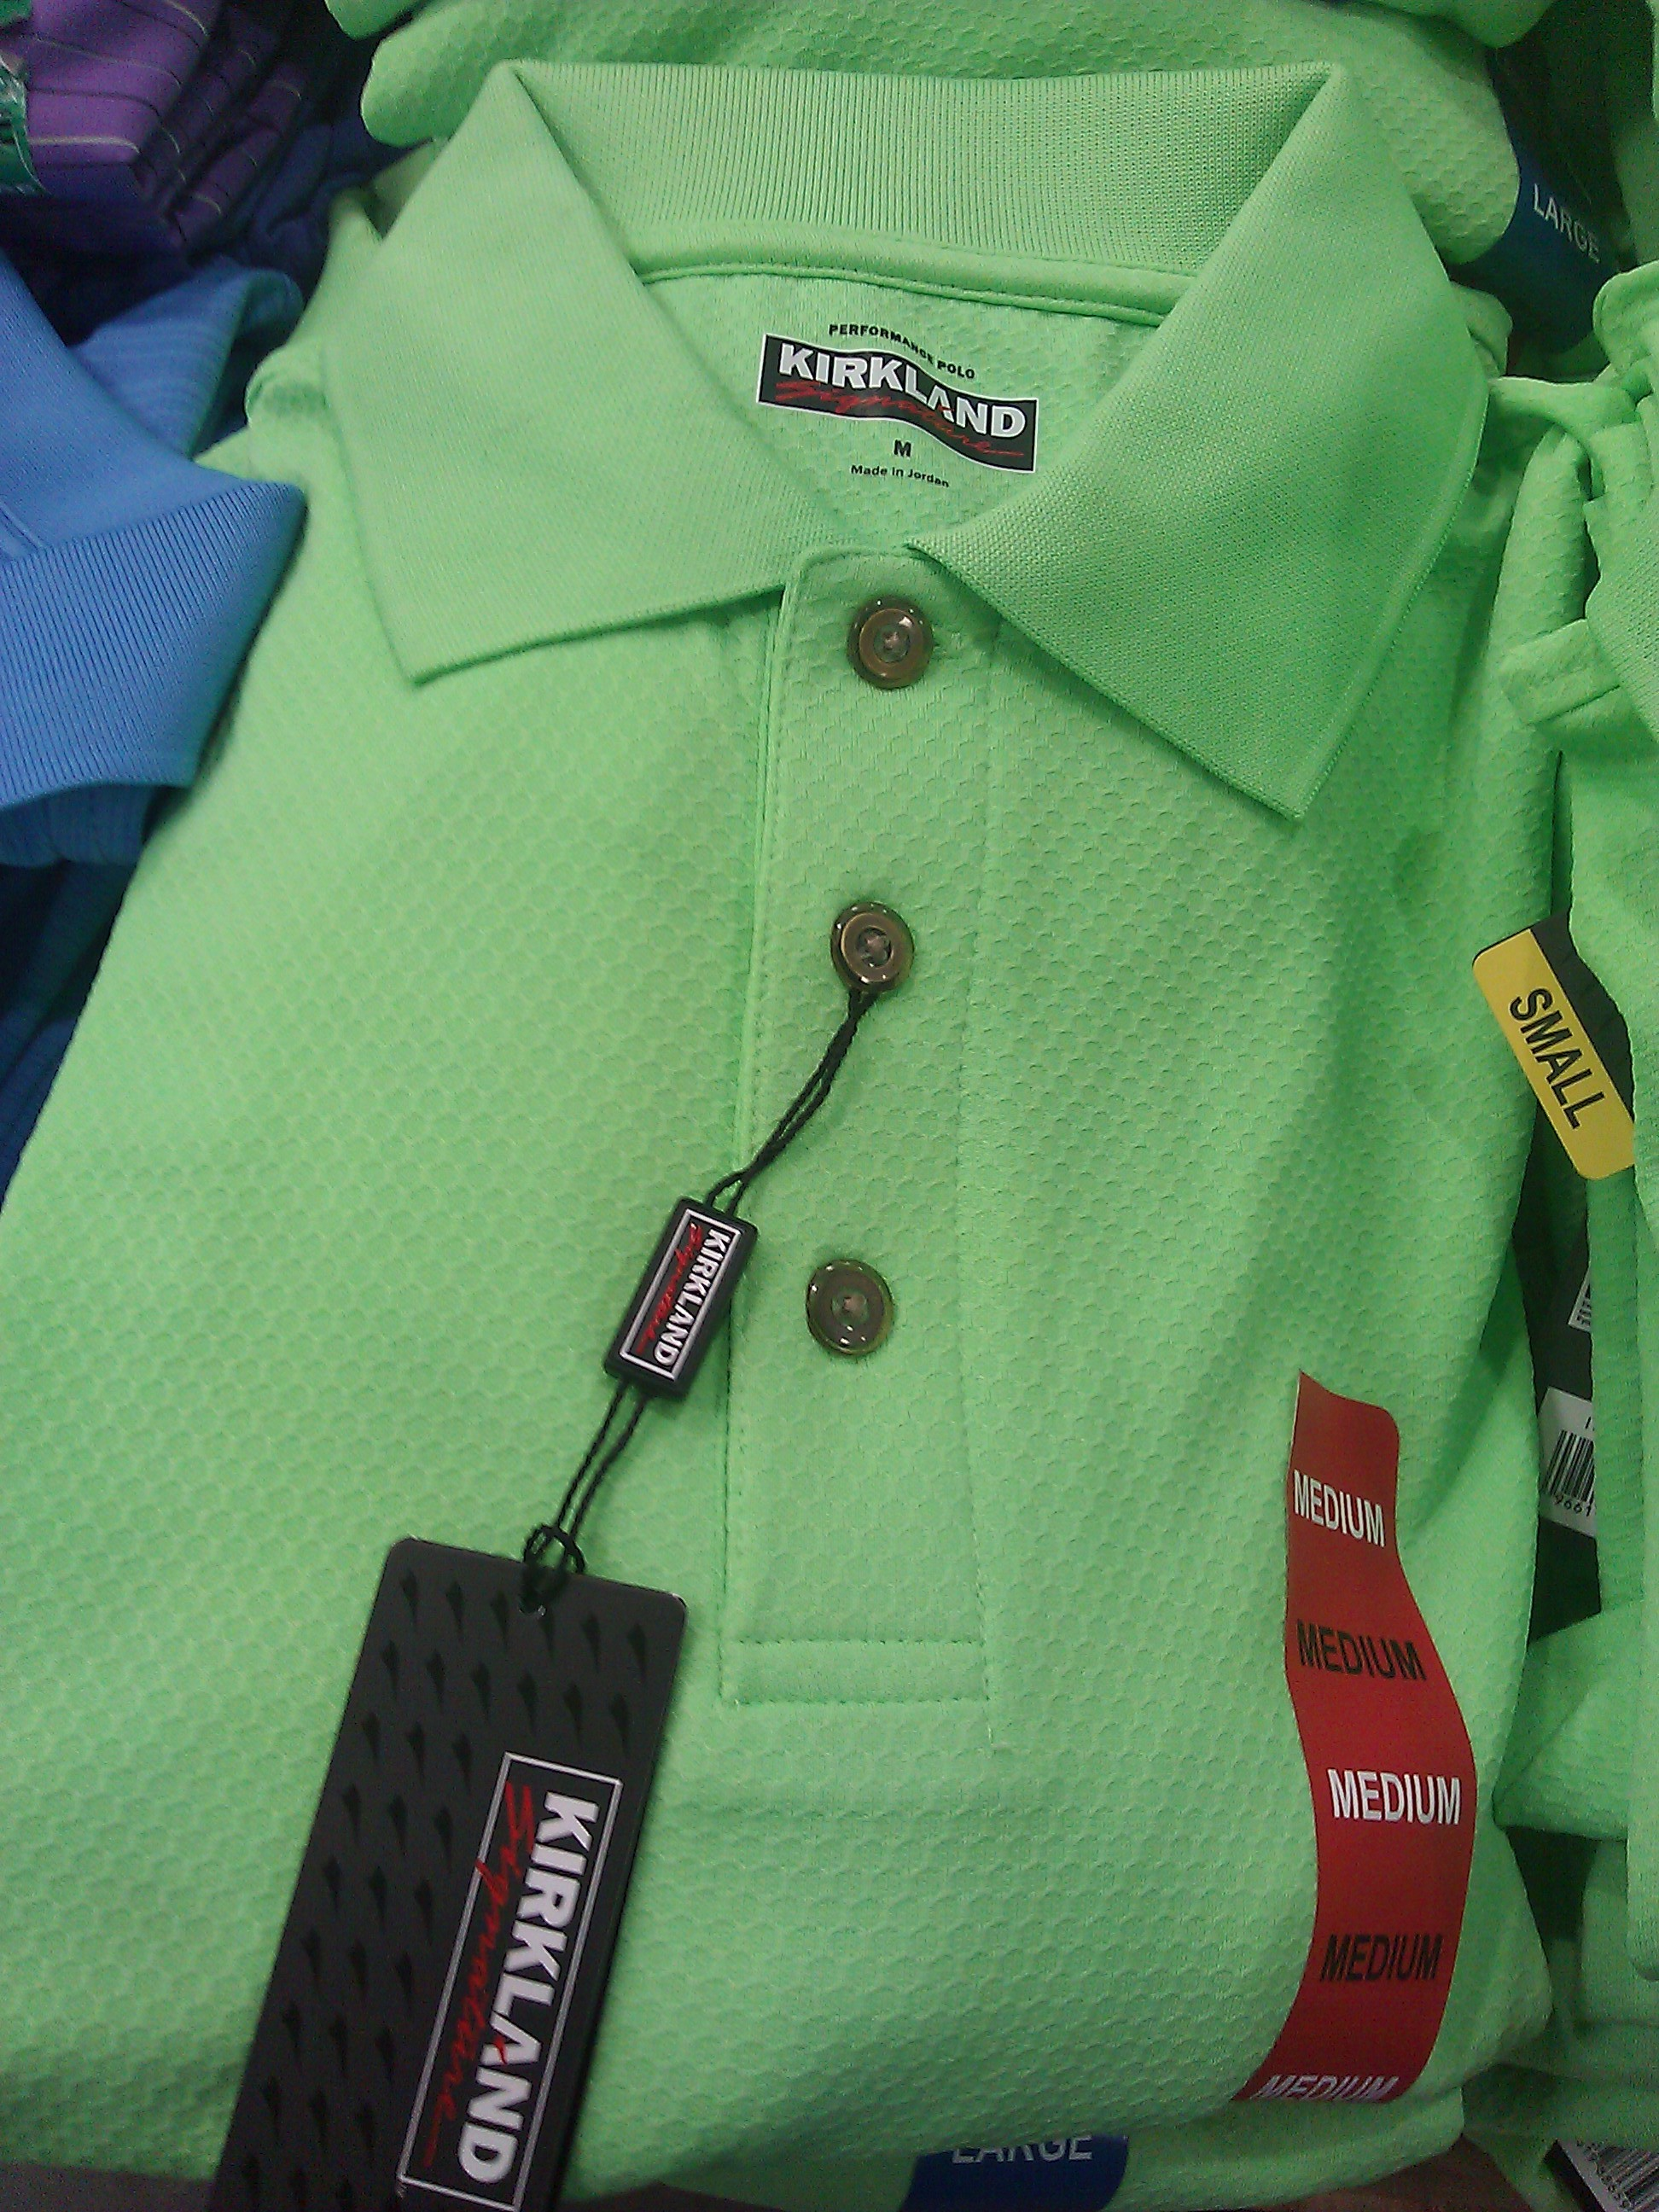 Kirkland Signature Golf Polo Shirts Costco